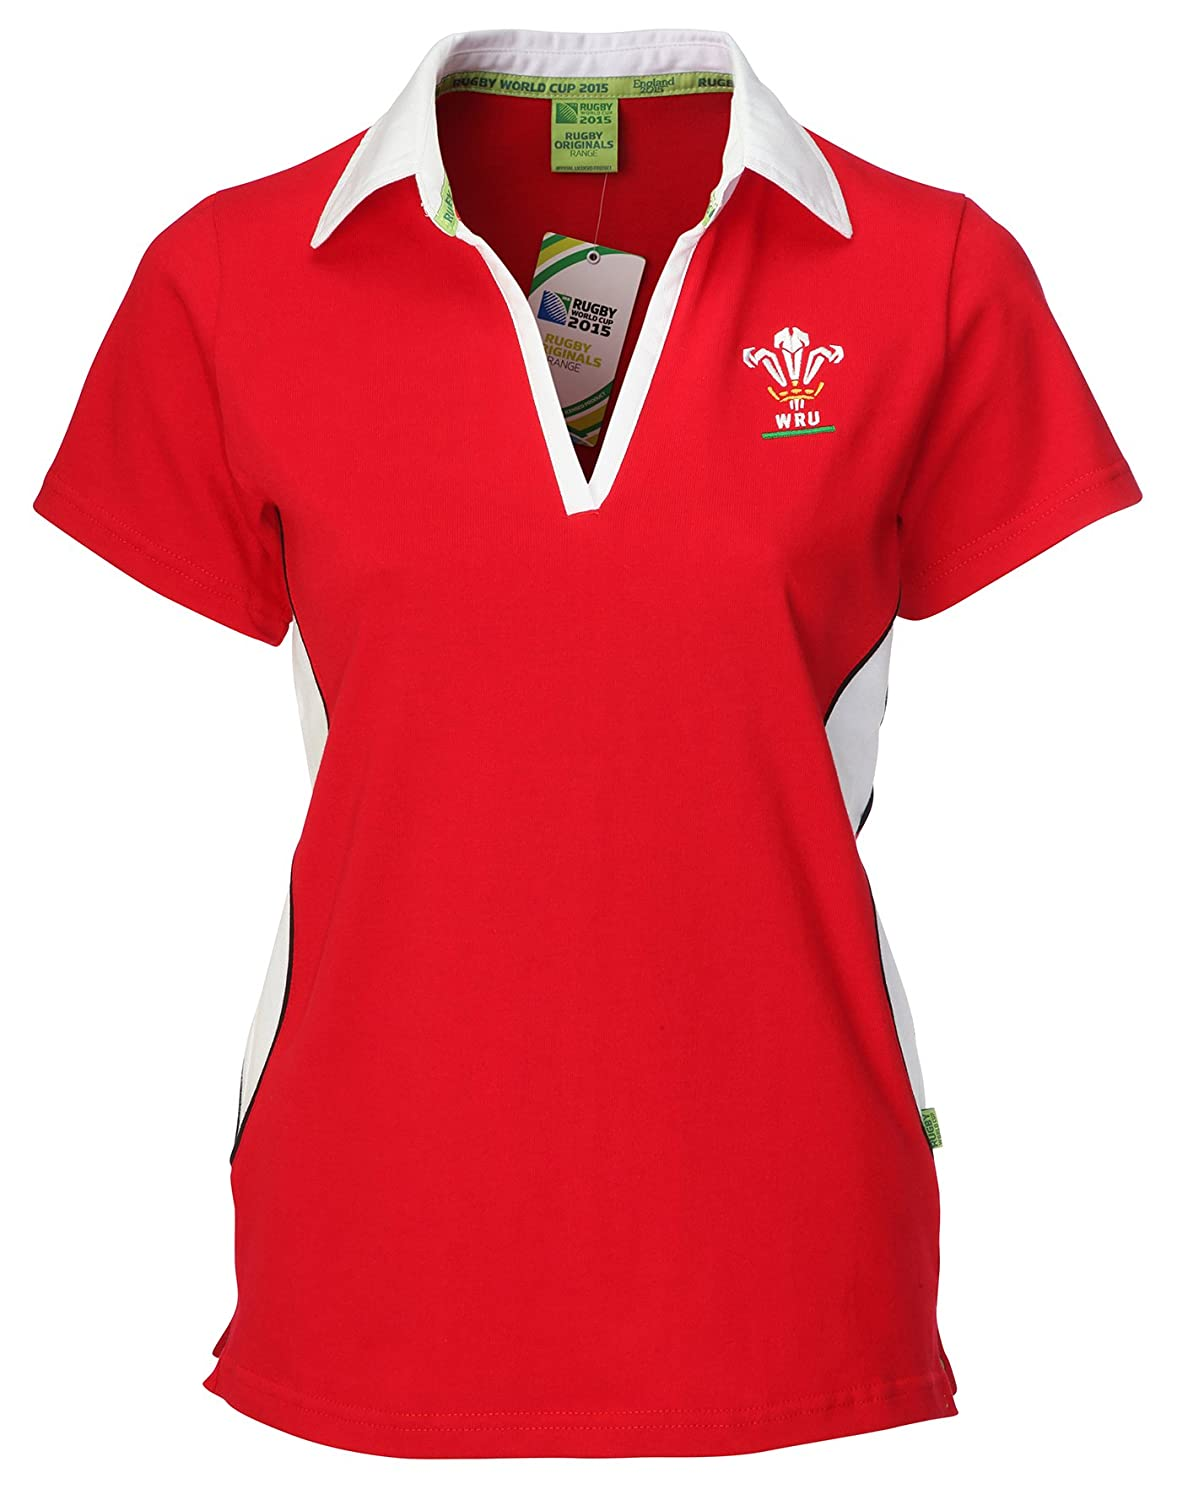 Design shirt kooga - Official Ladies Wru Wales Rugby Union Short Sleeve Welsh Rugby Shirt